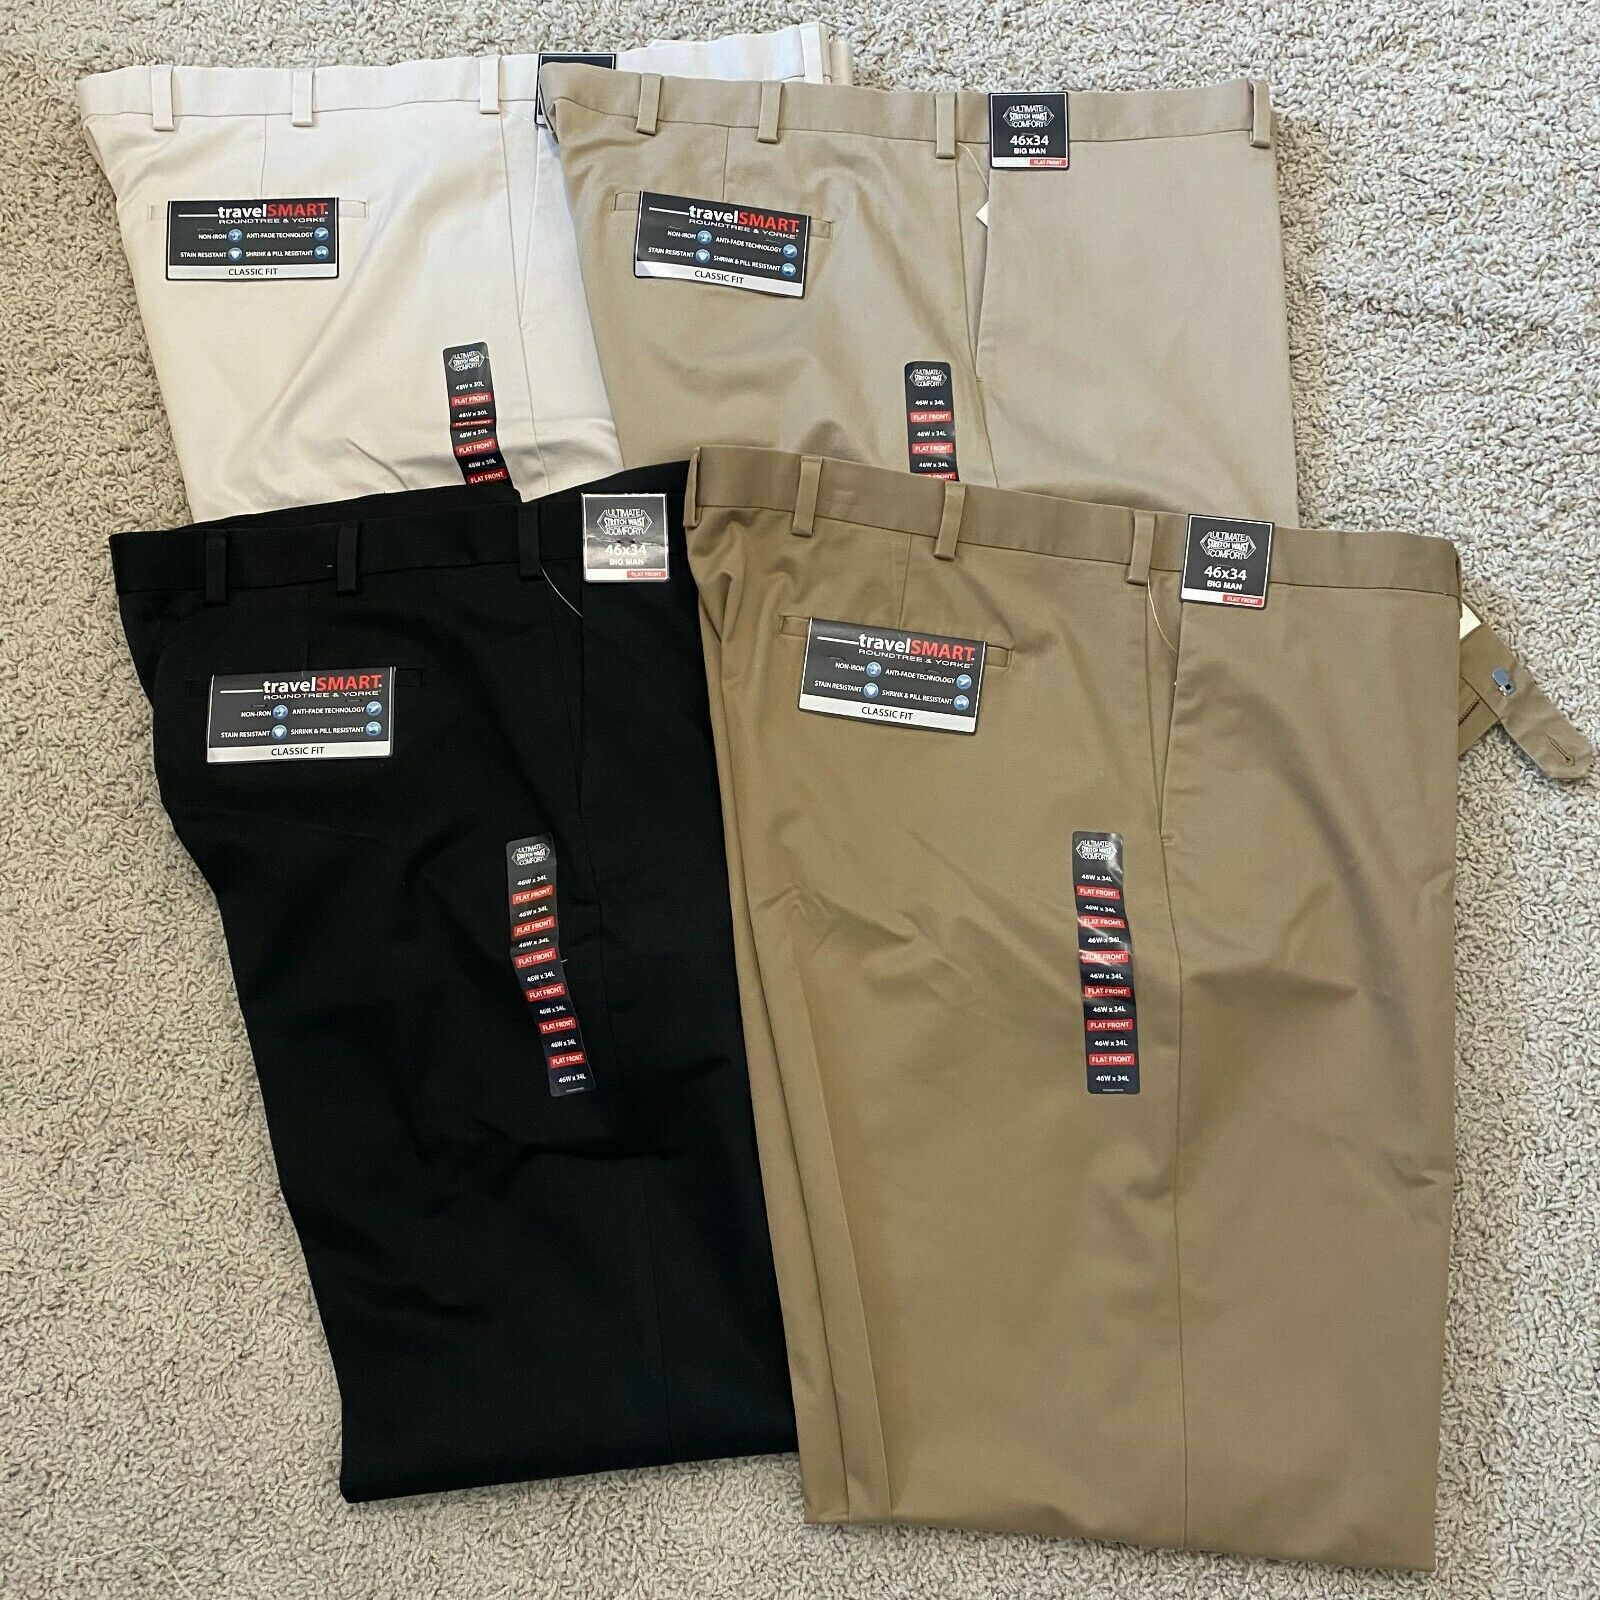 Roundtree & Yorke Mens Travel Smart Khaki Pants Chinos Trousers Clothing, Shoes & Accessories